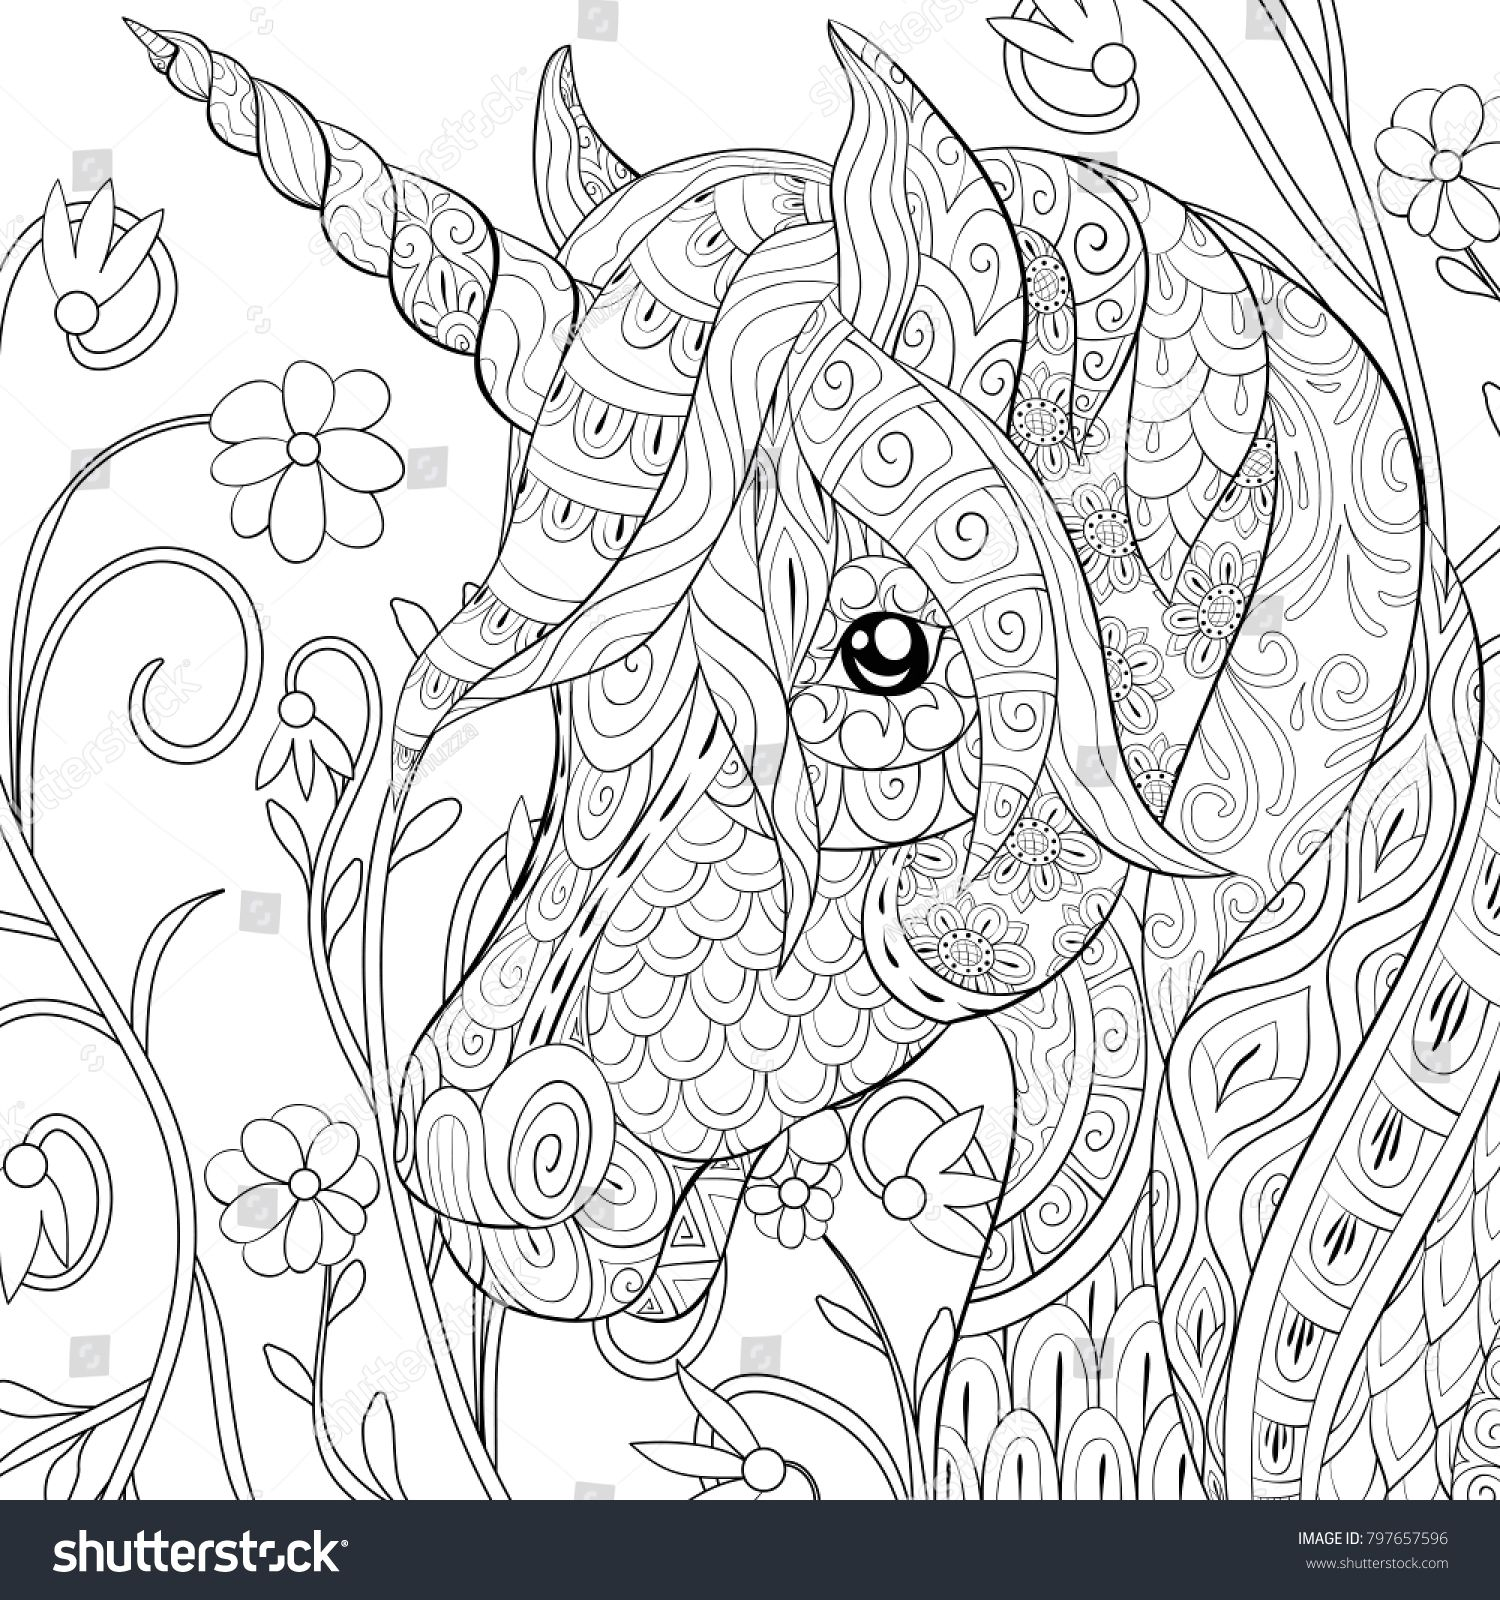 Adult Coloring Page Book A Cute Unicorn On The Floral Background For Relaxing Zen Art Style